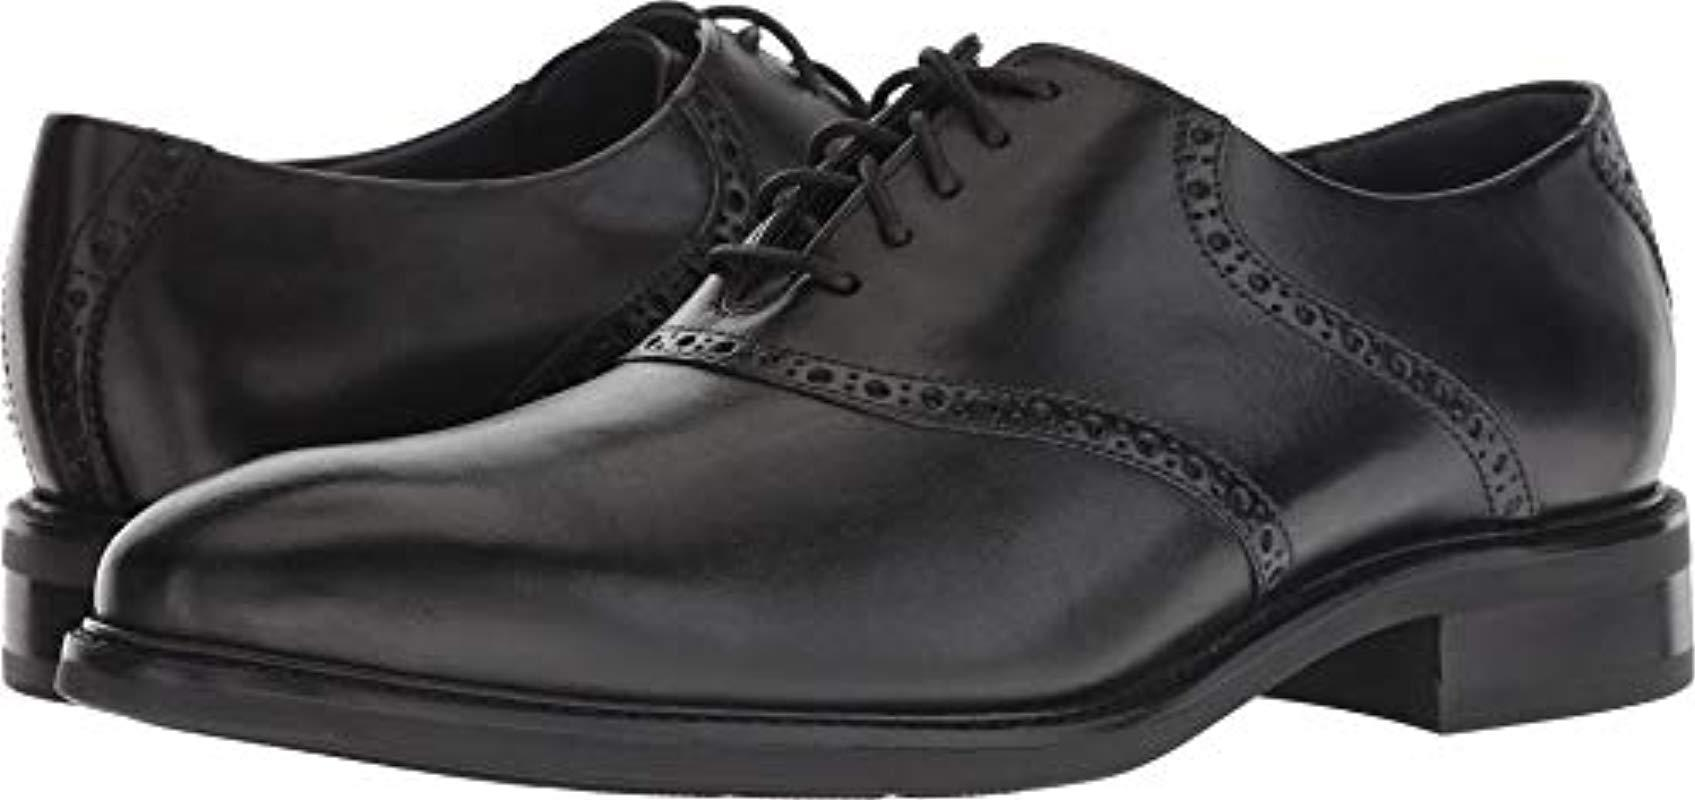 d9215ec7780 Lyst - Cole Haan Buckland Saddle Ox Oxford in Black for Men